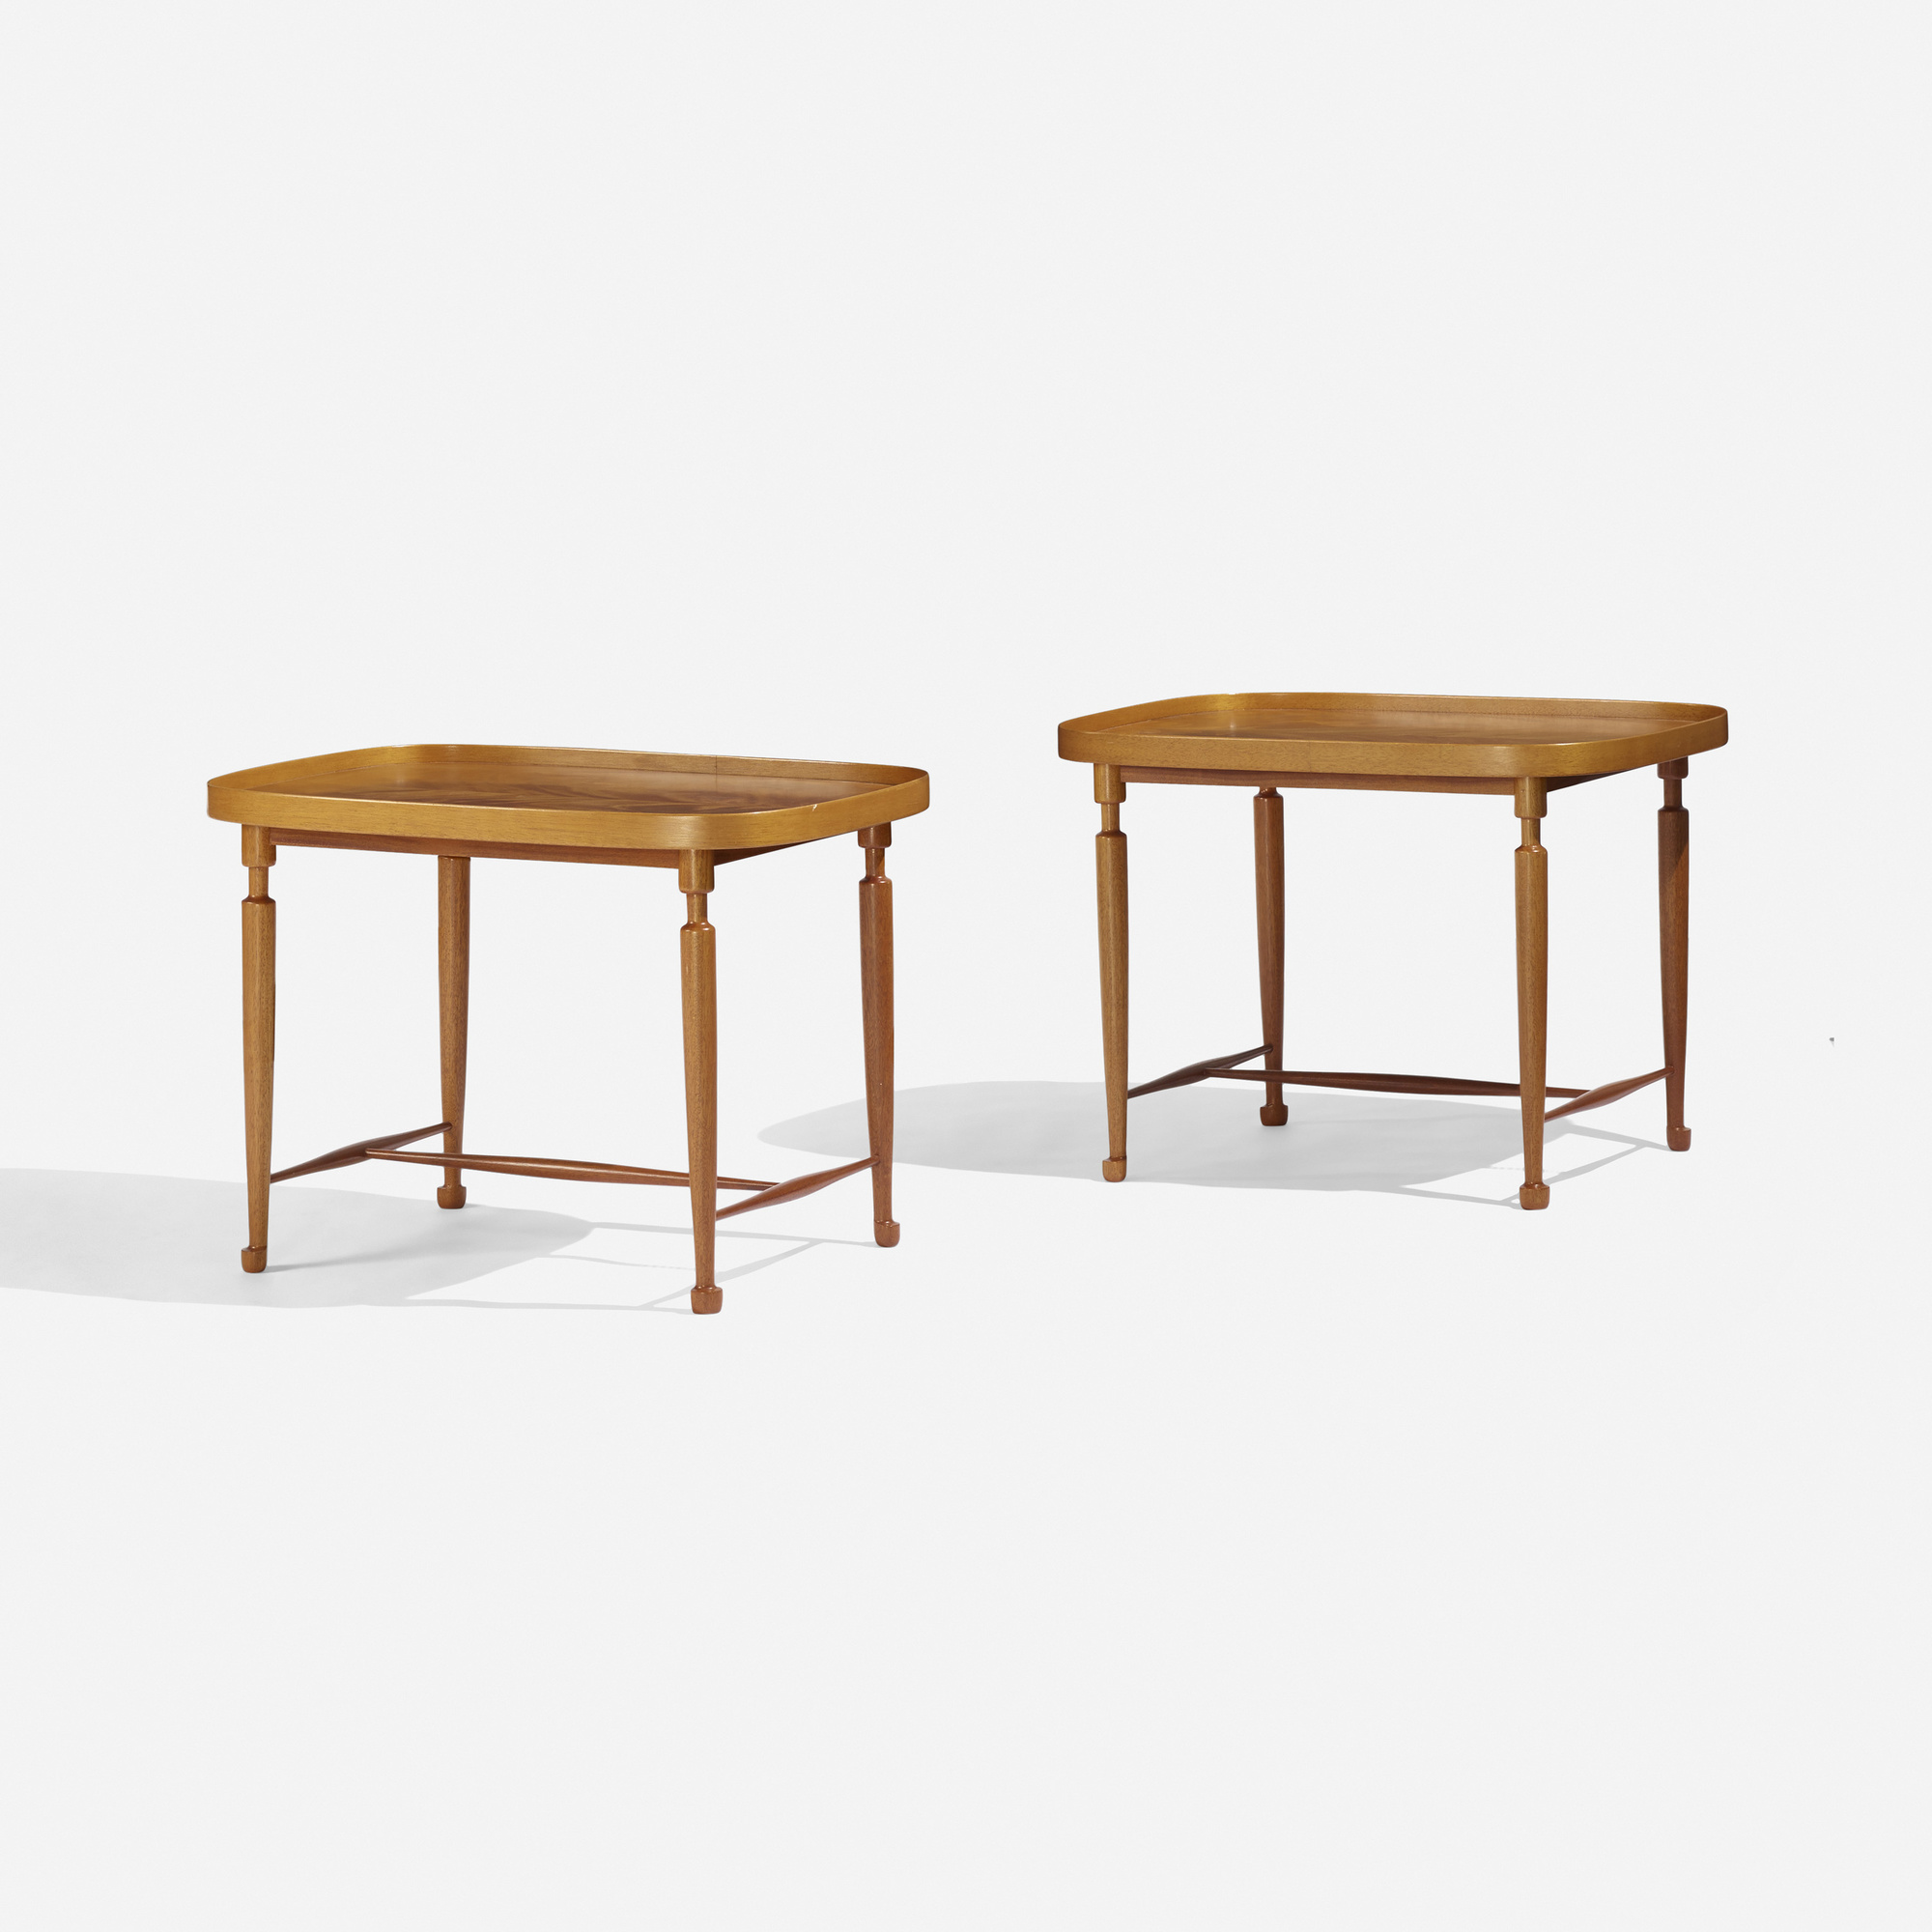 128: Josef Frank / occasional tables model 974, pair (1 of 3)